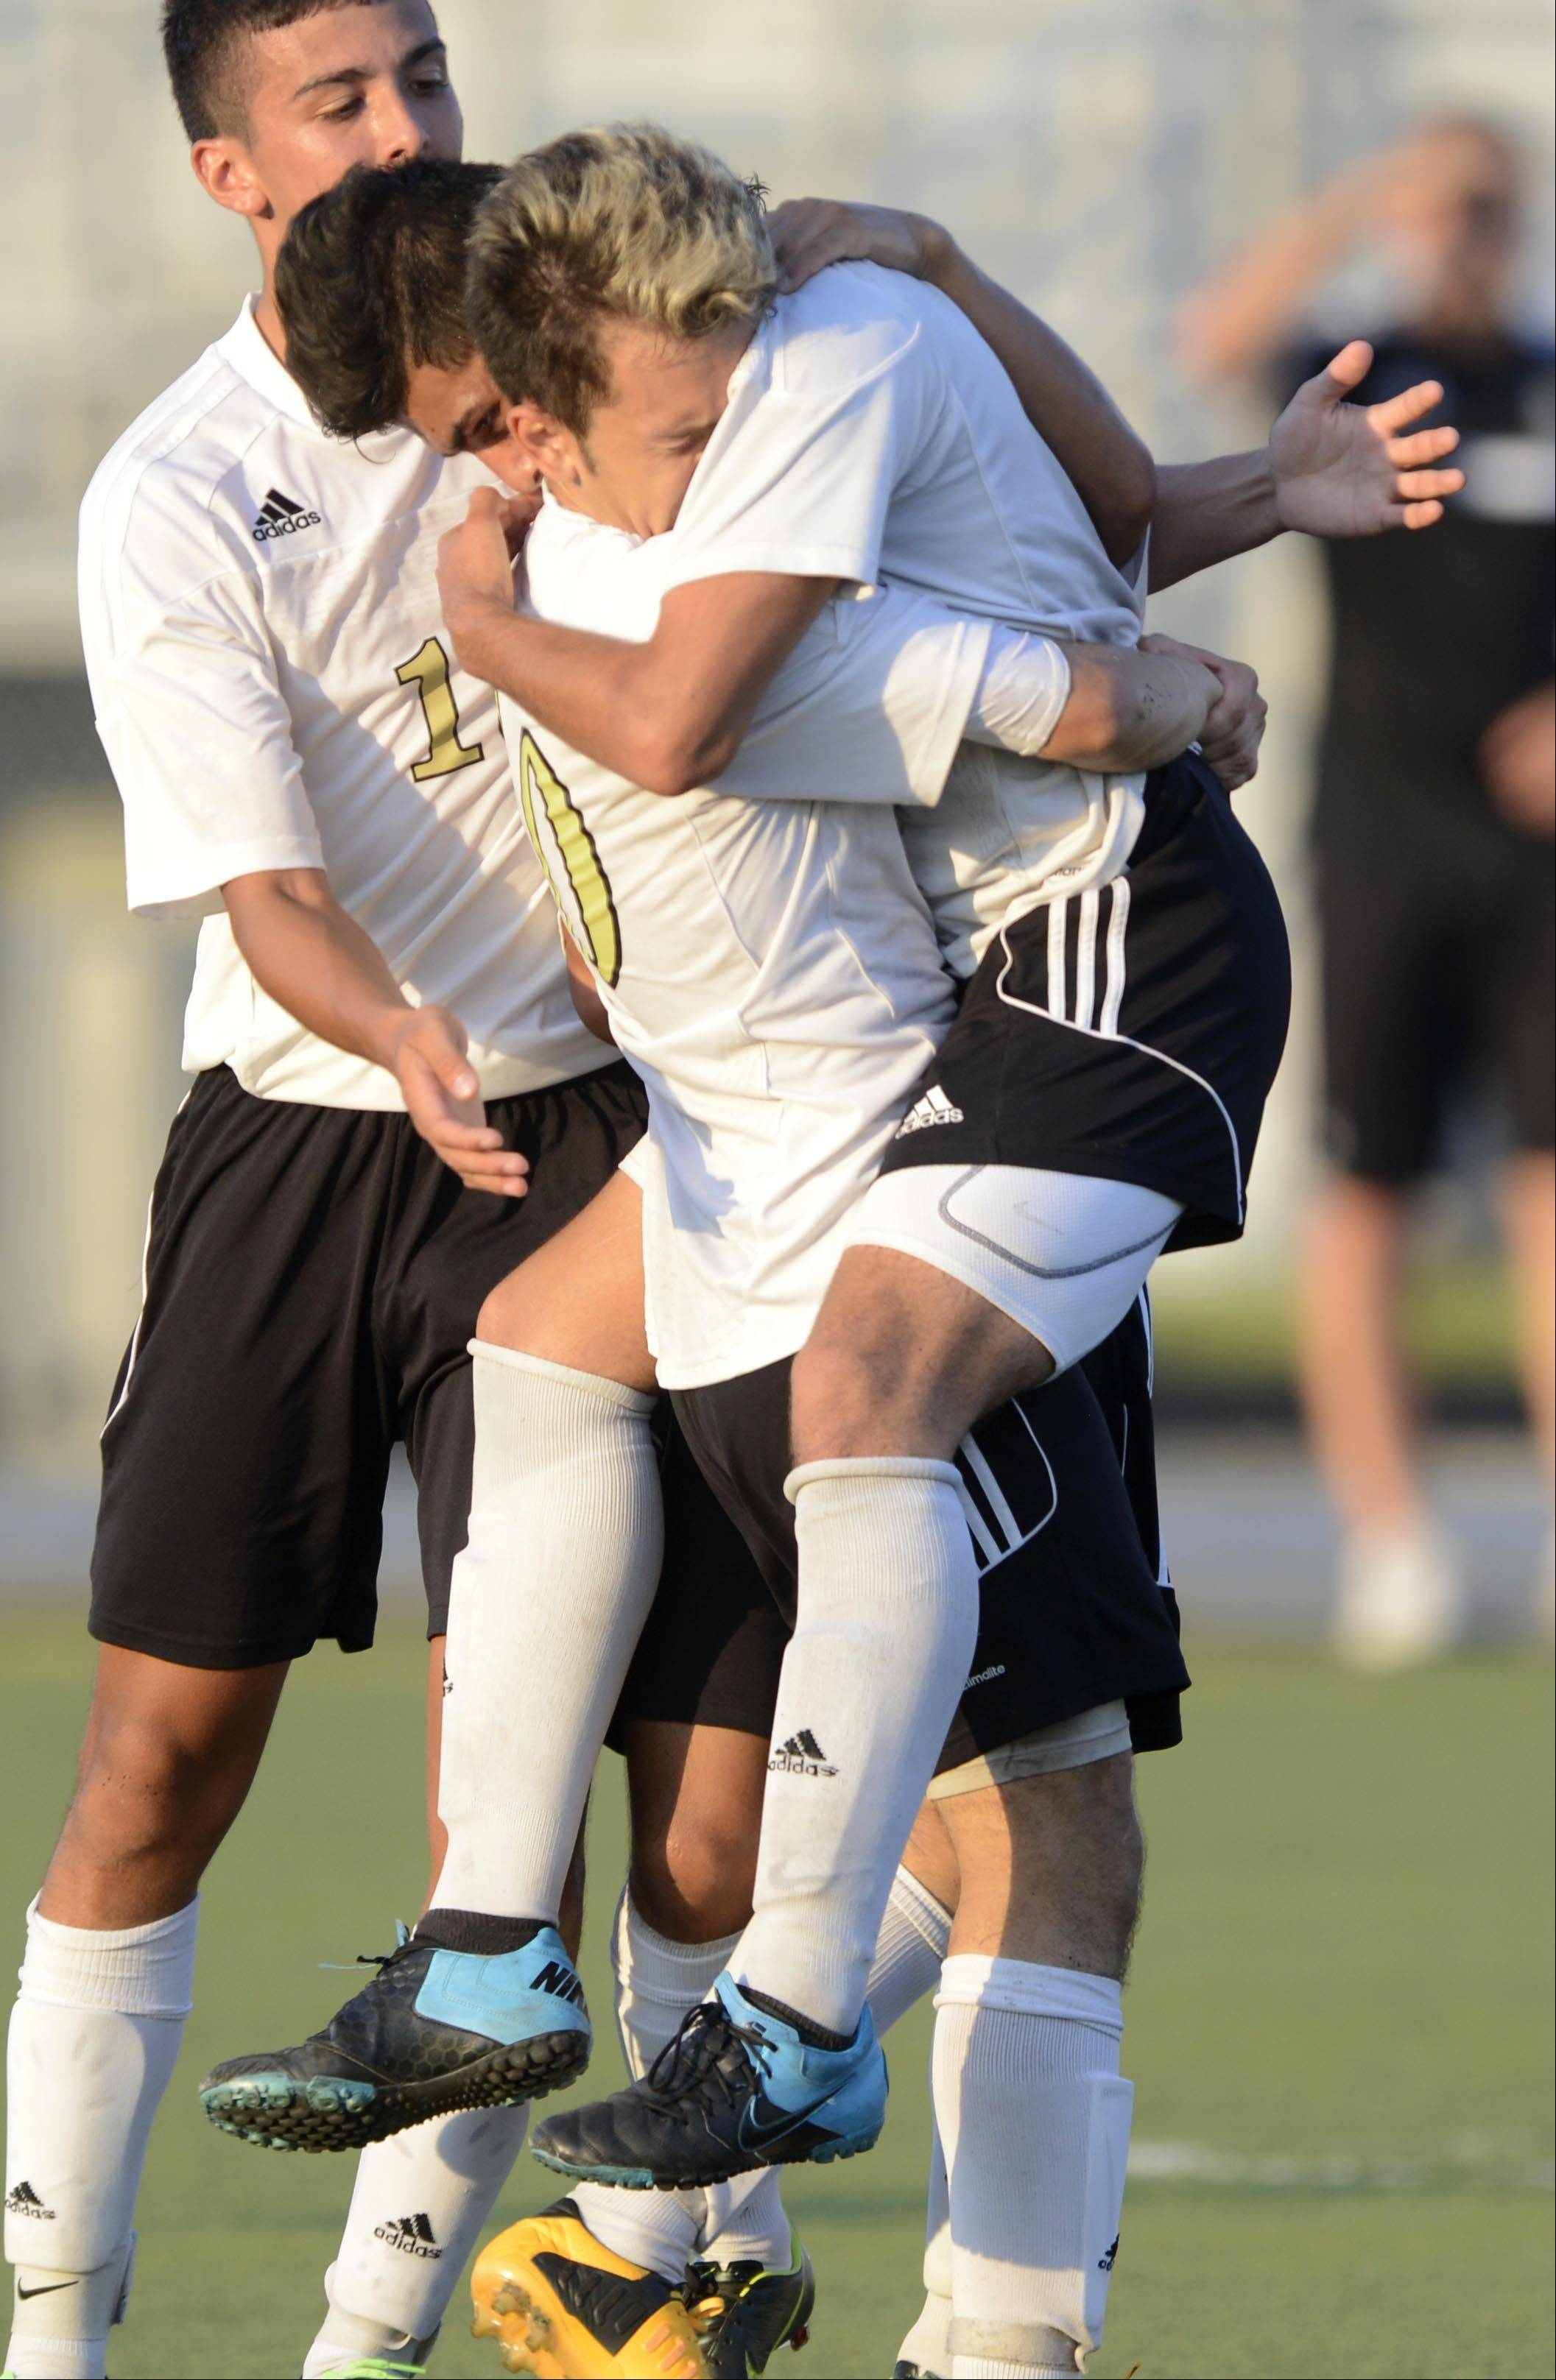 Streamwood�s Christian Vences is picked up by teammate Nestor Ascencio after Vences scored the first goal against Kaneland Monday in Streamwood. Teammate Christian Balbino also arrives for the celebration.